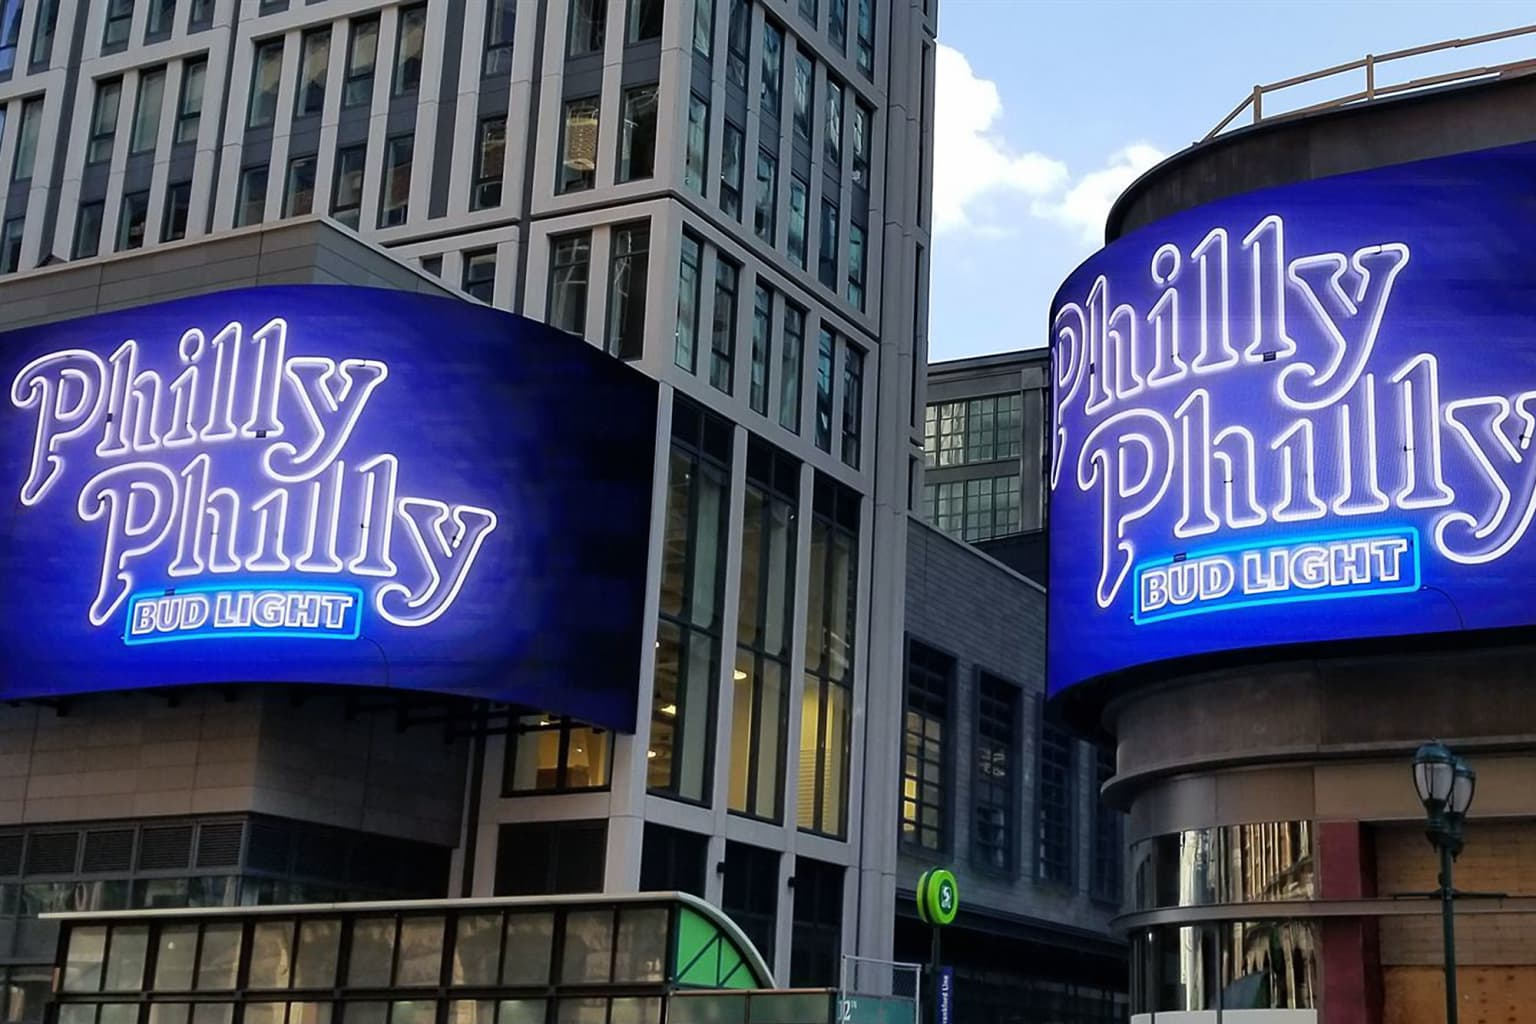 """Philly Philly"" Bud Light"